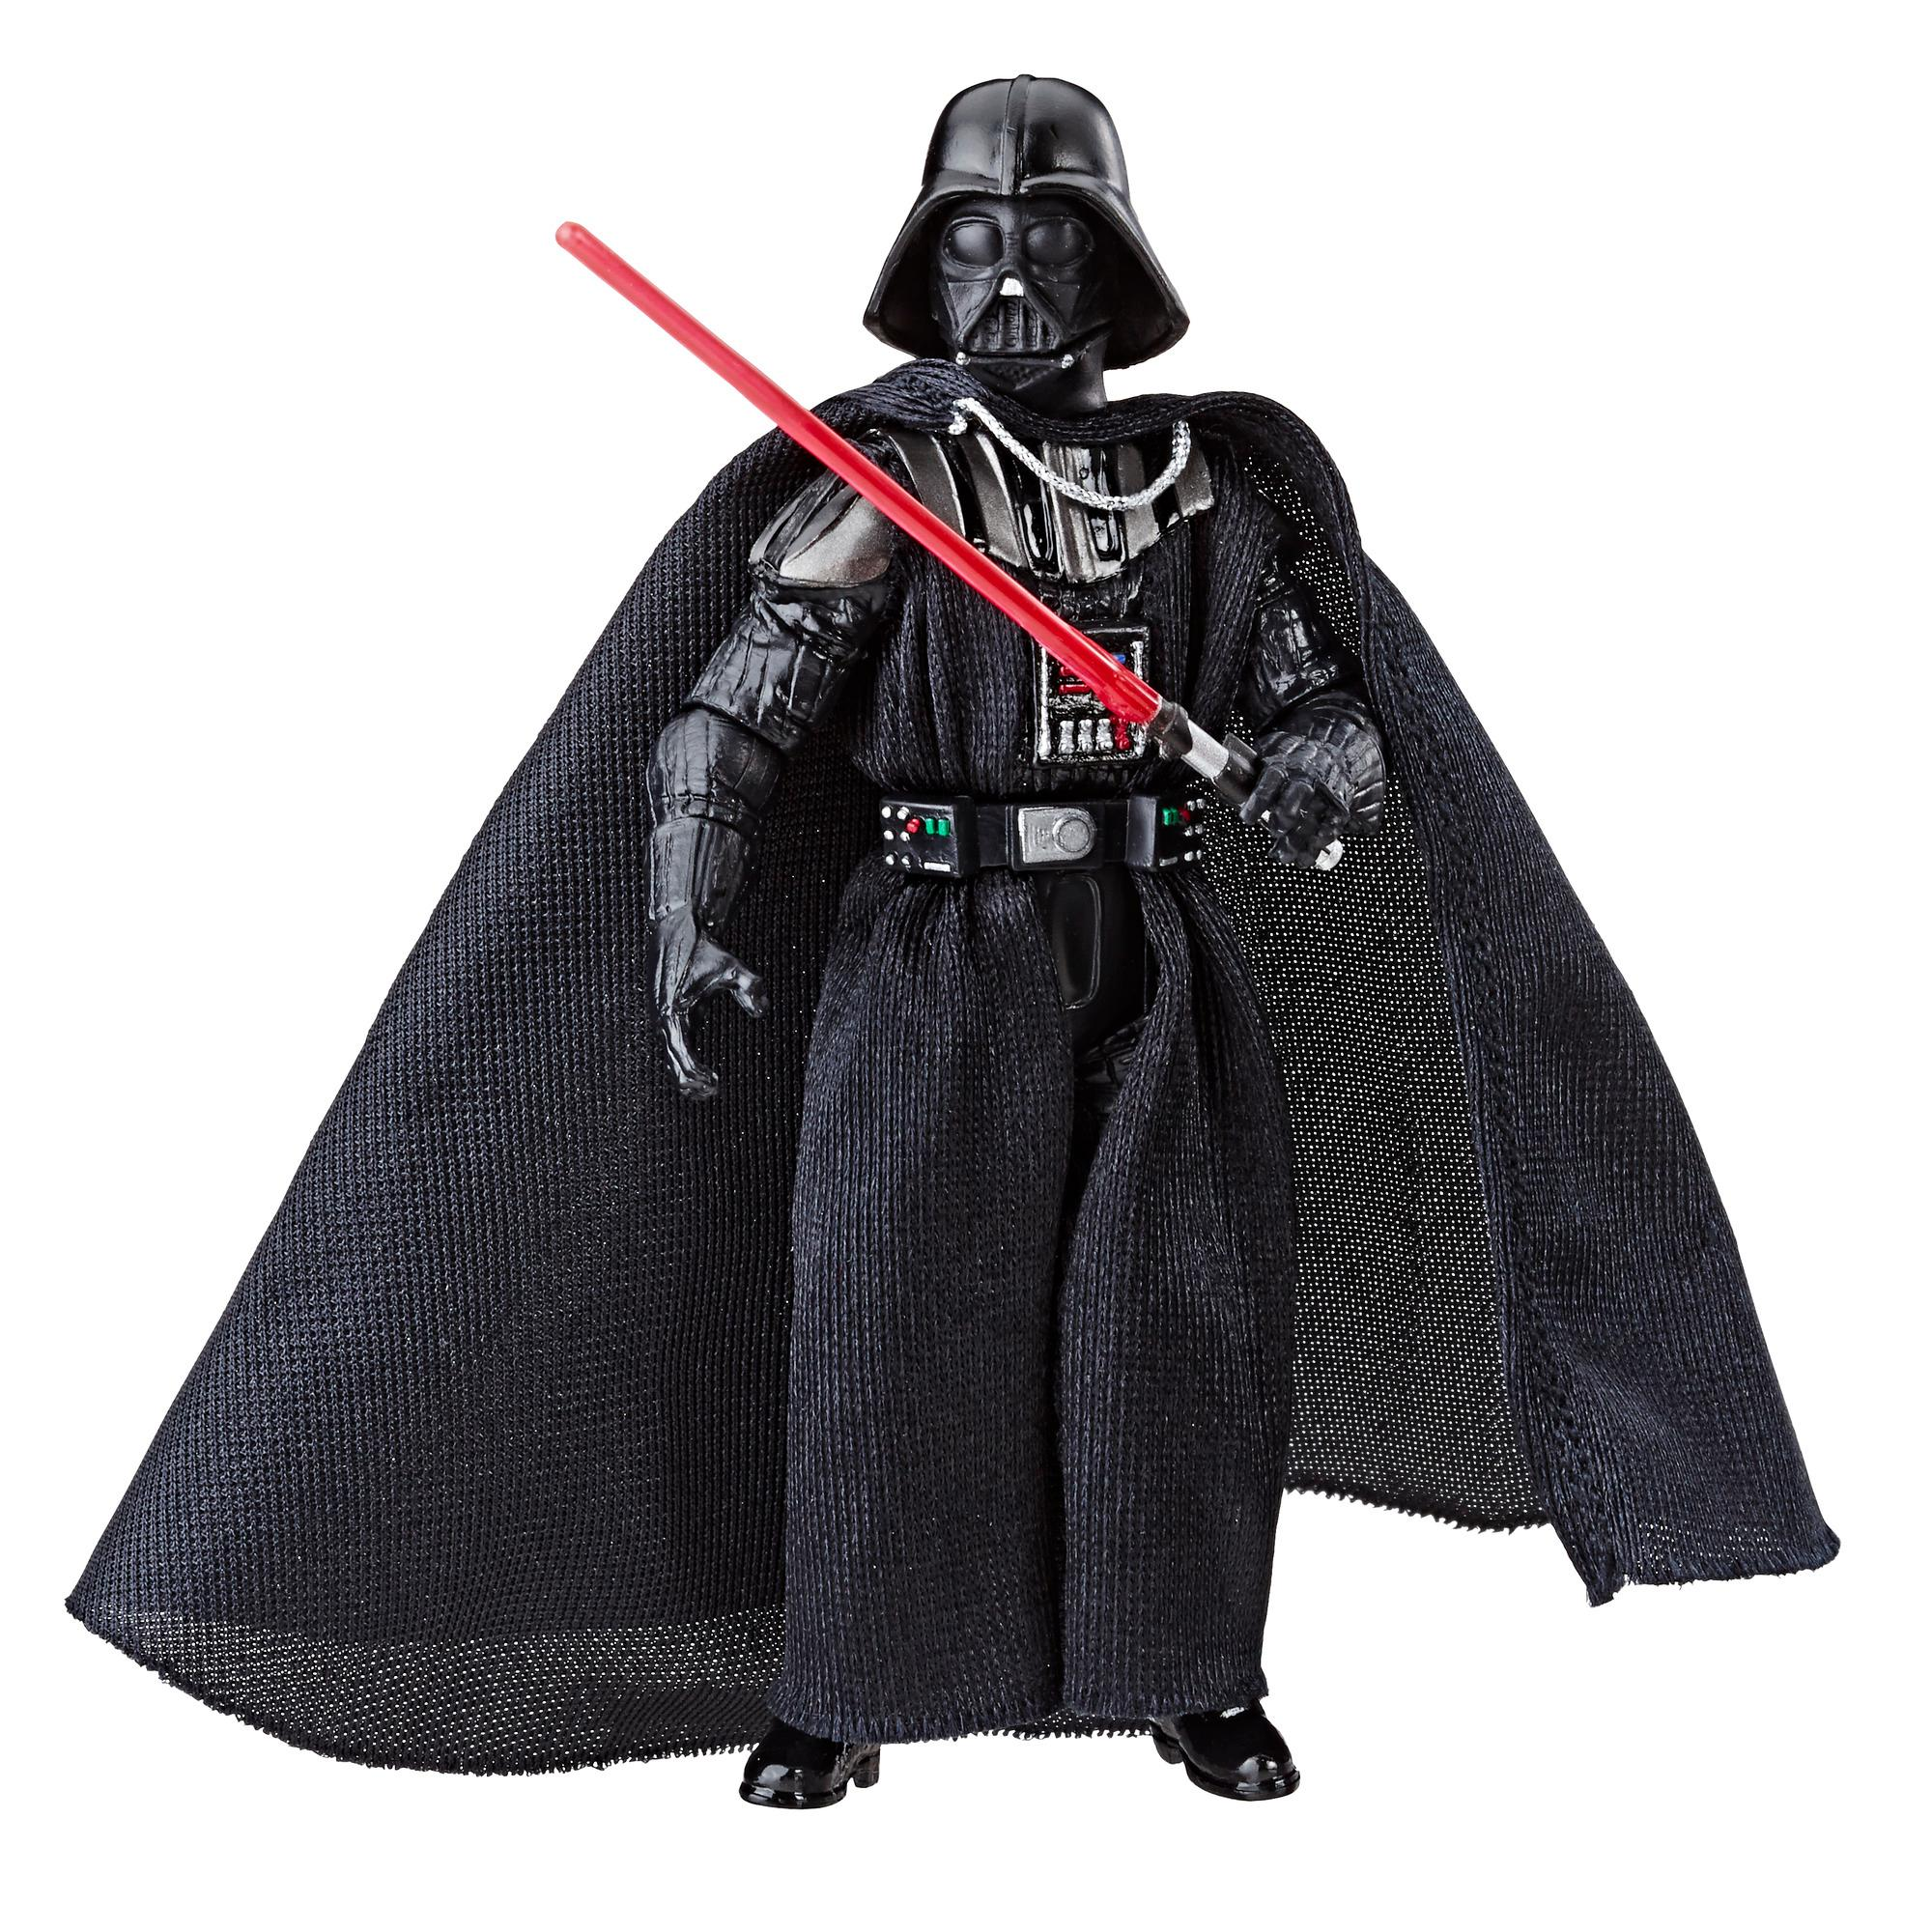 Star Wars The Vintage Collection Star Wars: The Empire Strikes Back Darth Vader 3.75-inch Figure